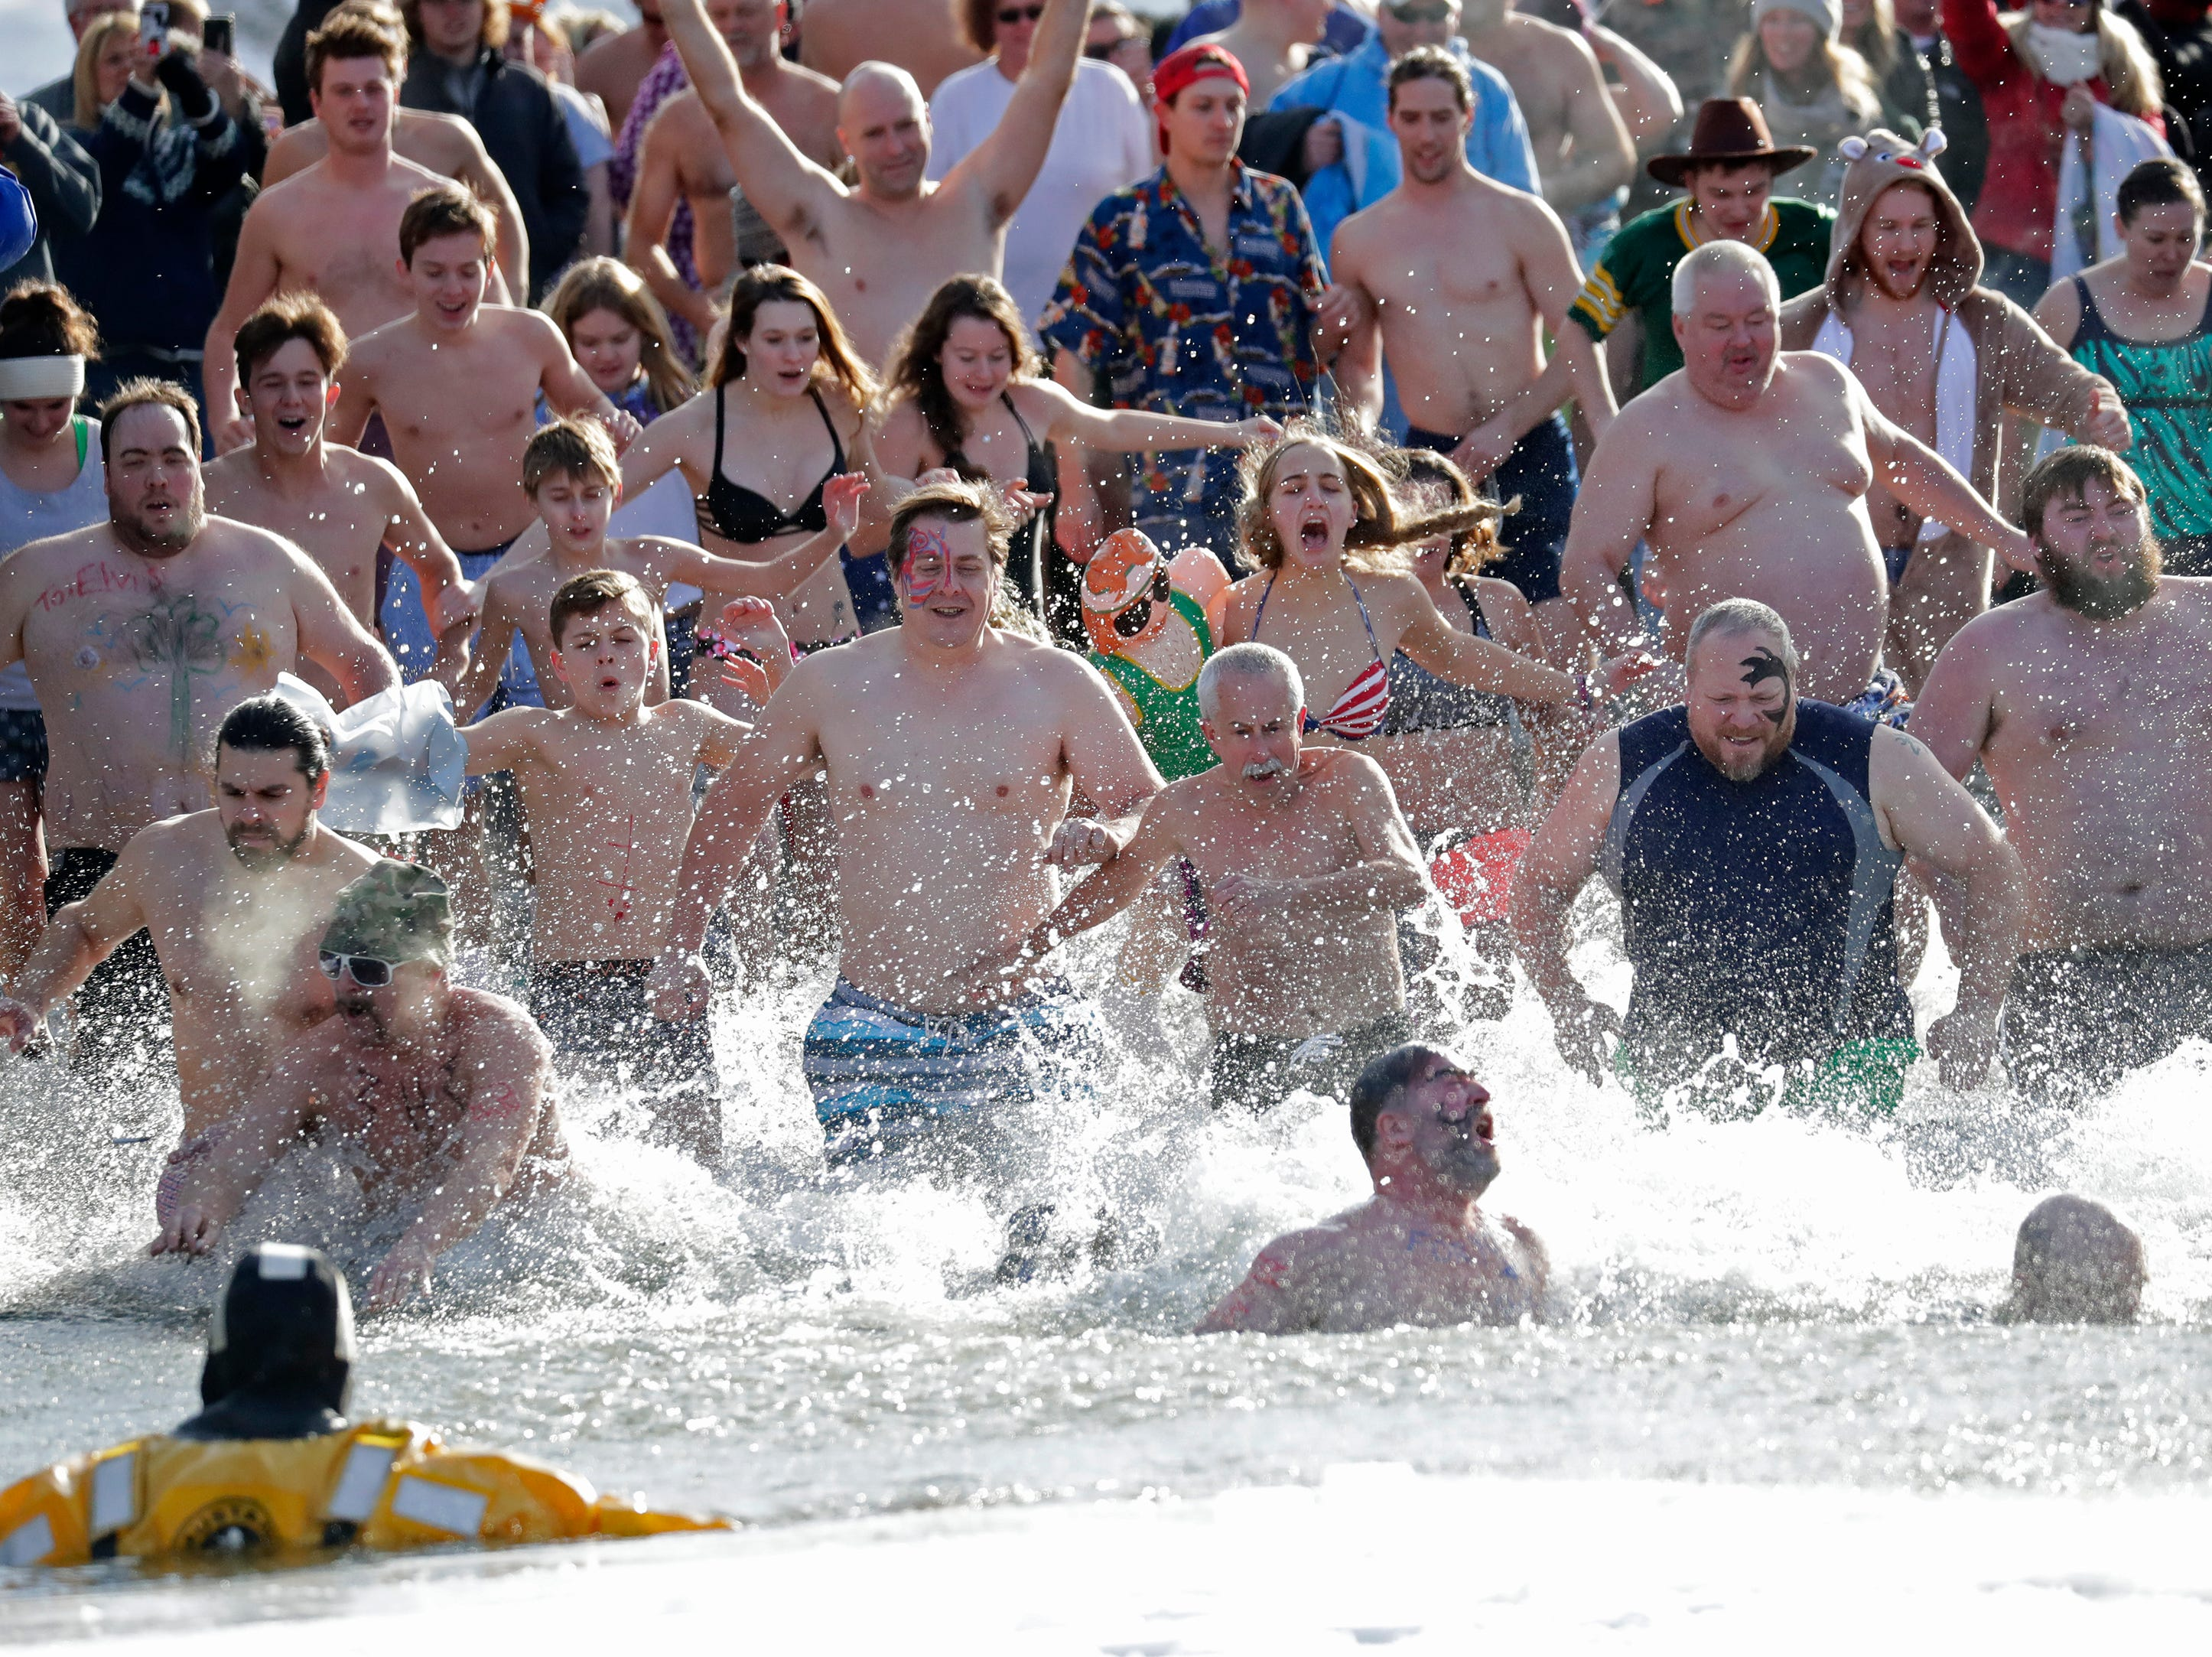 People rush into bitterly cold water during the Polar Bear Plunge Tuesday, January 1, 2019, at Becker Marine on Lime Kiln Lake in Waupaca, Wis. 